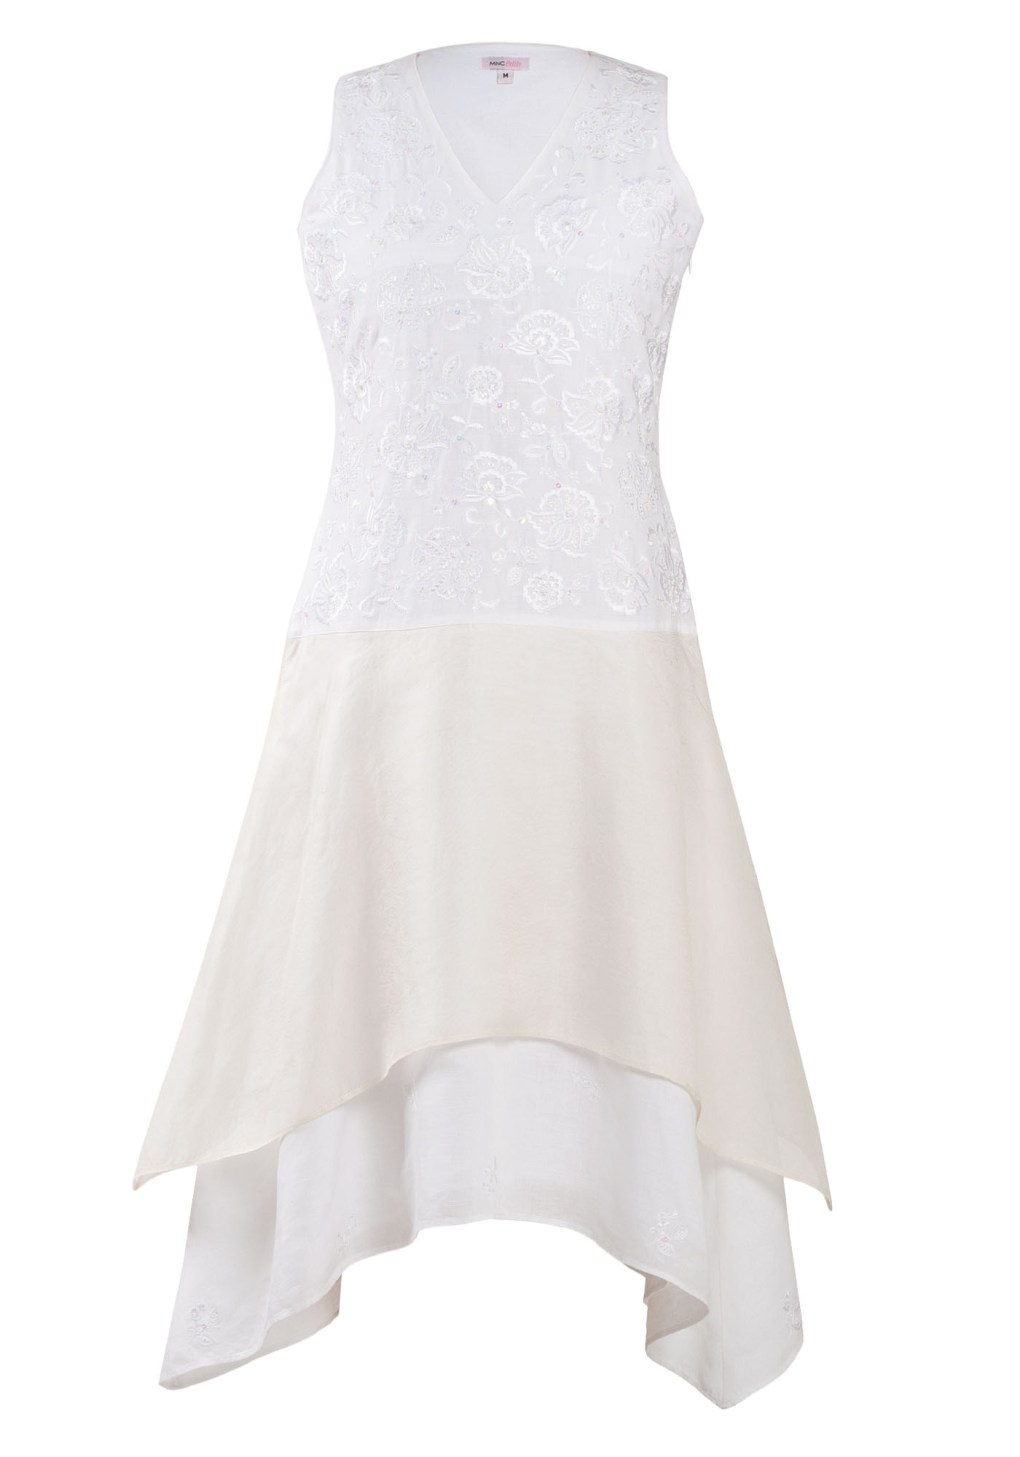 MINC Petite Girls Embroidered Dress in White Cotton Linen and Silk